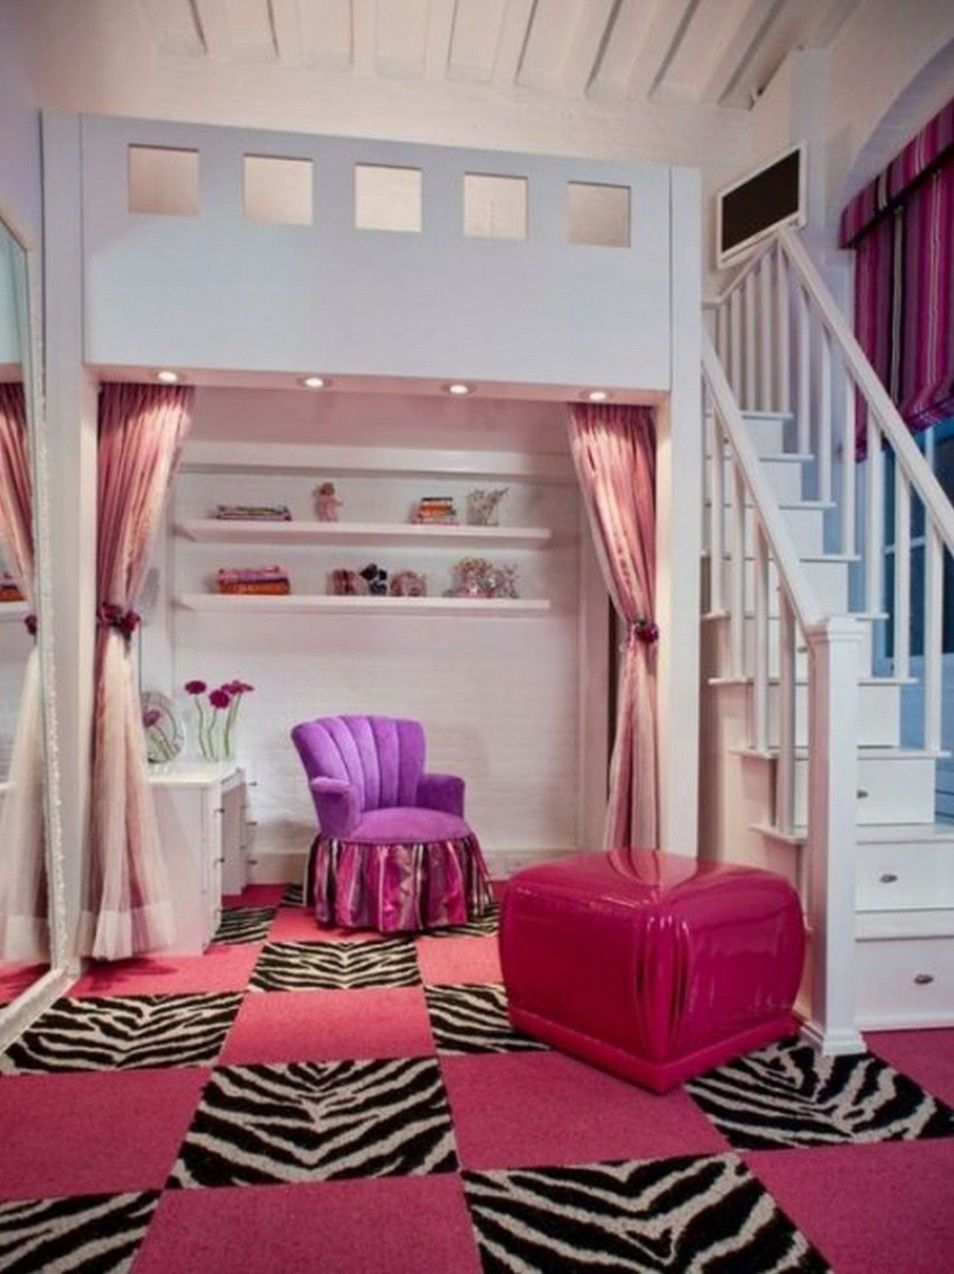 Unique bedroom furniture for teenagers - Pictures Of Excellent Magnificent Color In Cool Bedroom Wall Ideas At Beauty Home Decoration Furniture Teens